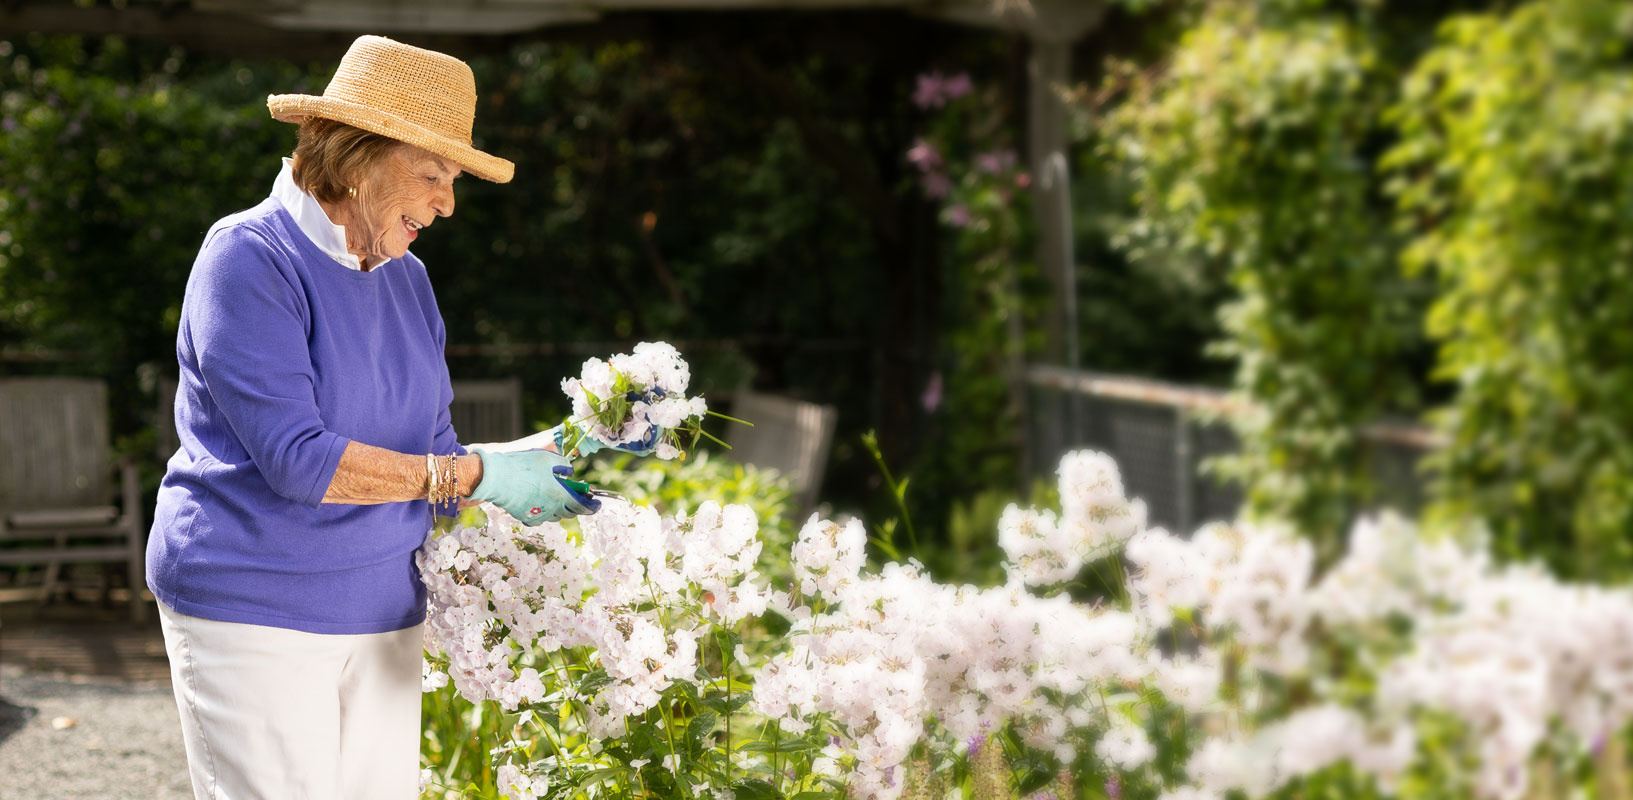 A senior woman collects flowers from her flowerbed